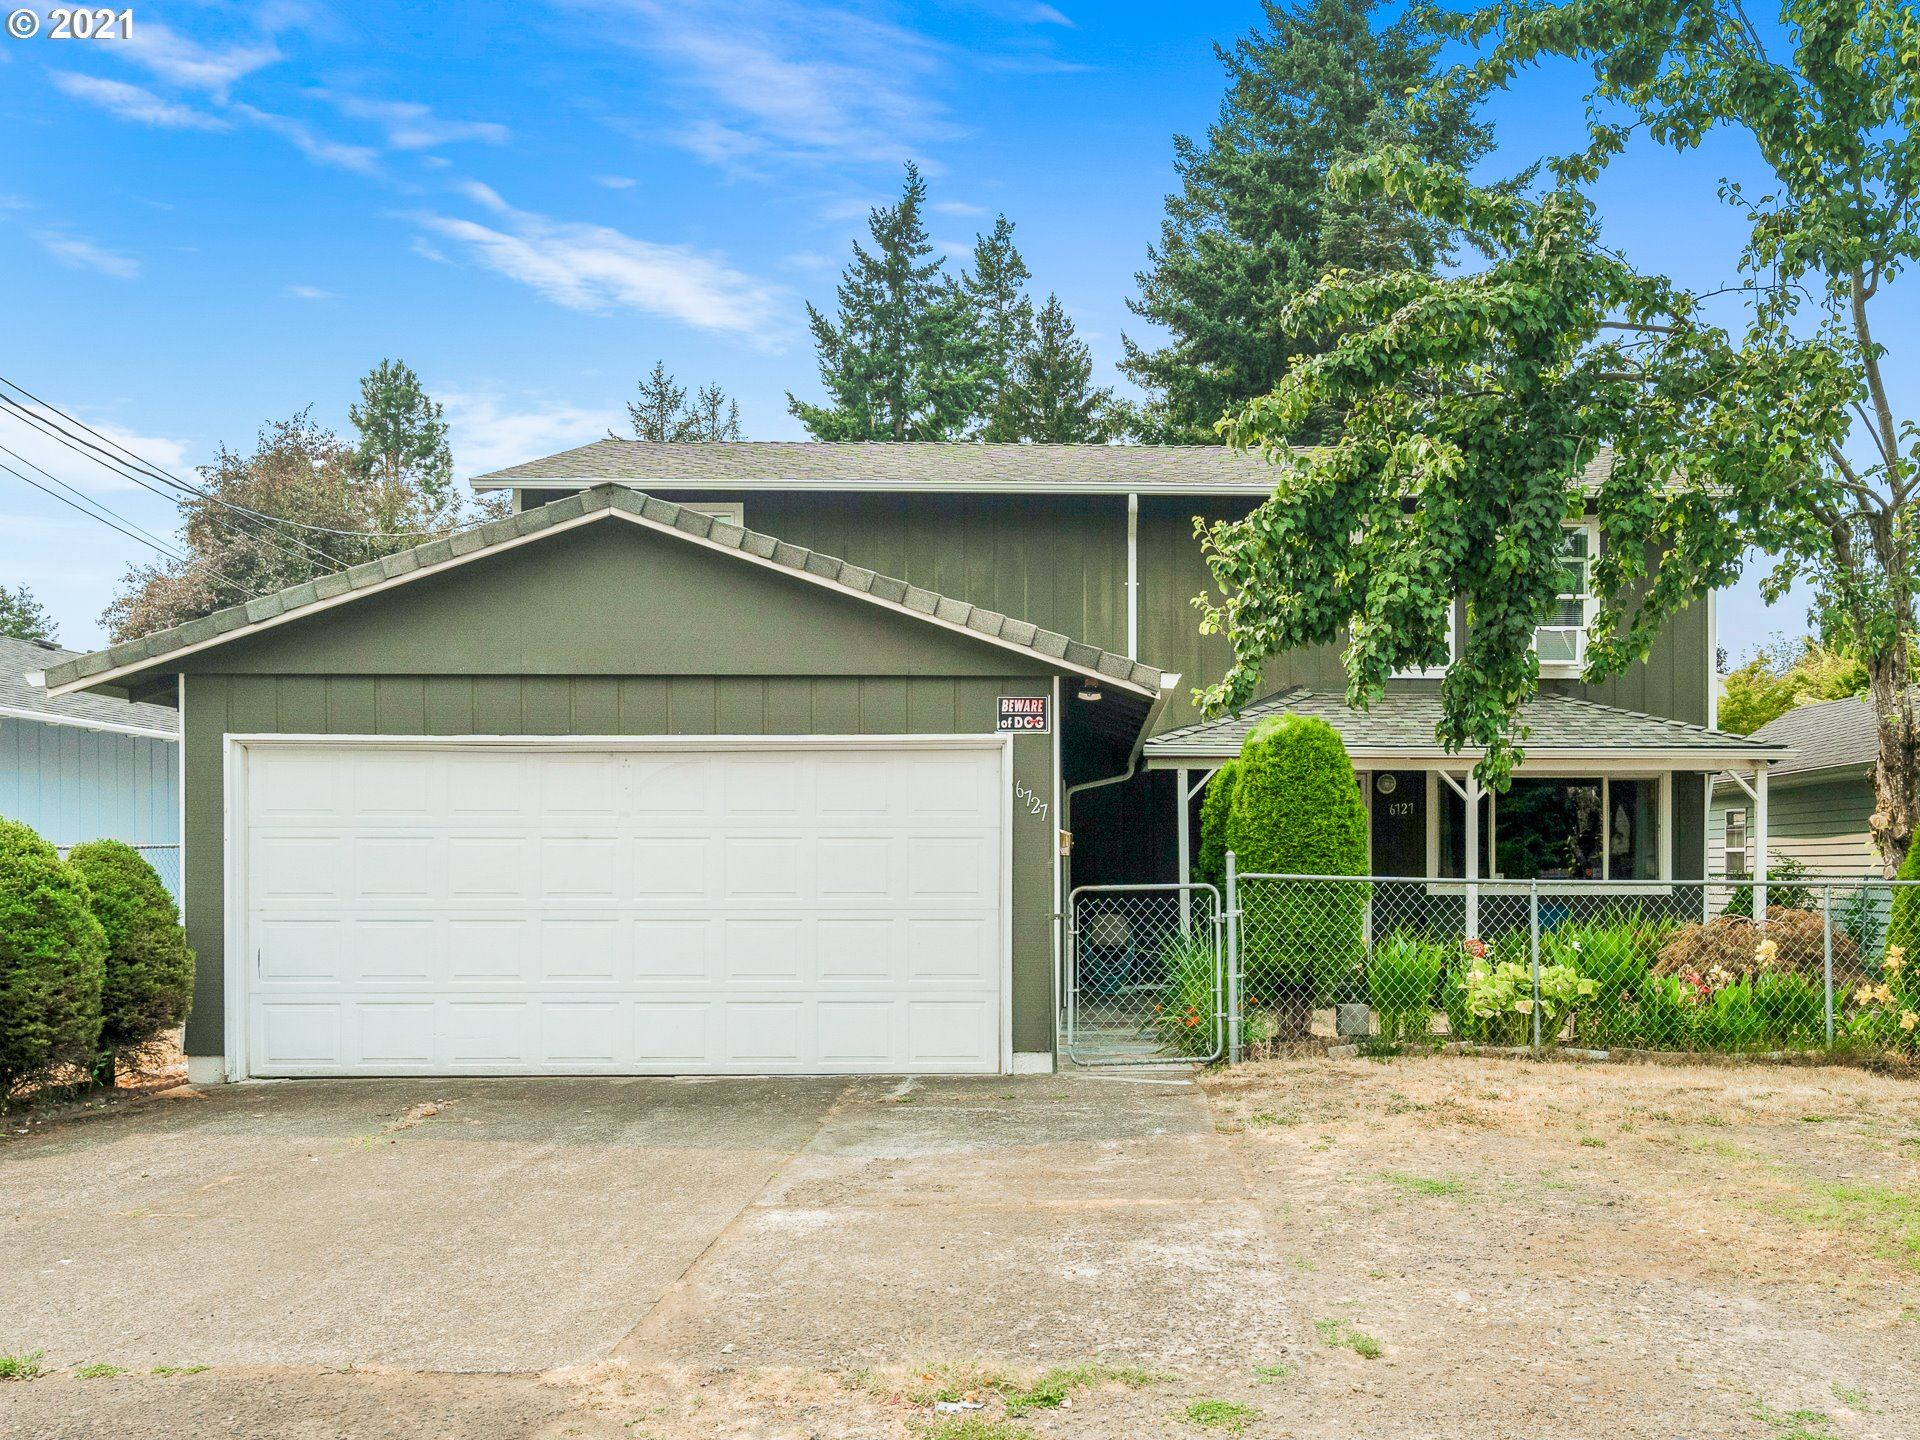 6727 SE 65TH AVE, Portland, OR 97206 - MLS#: 21228352